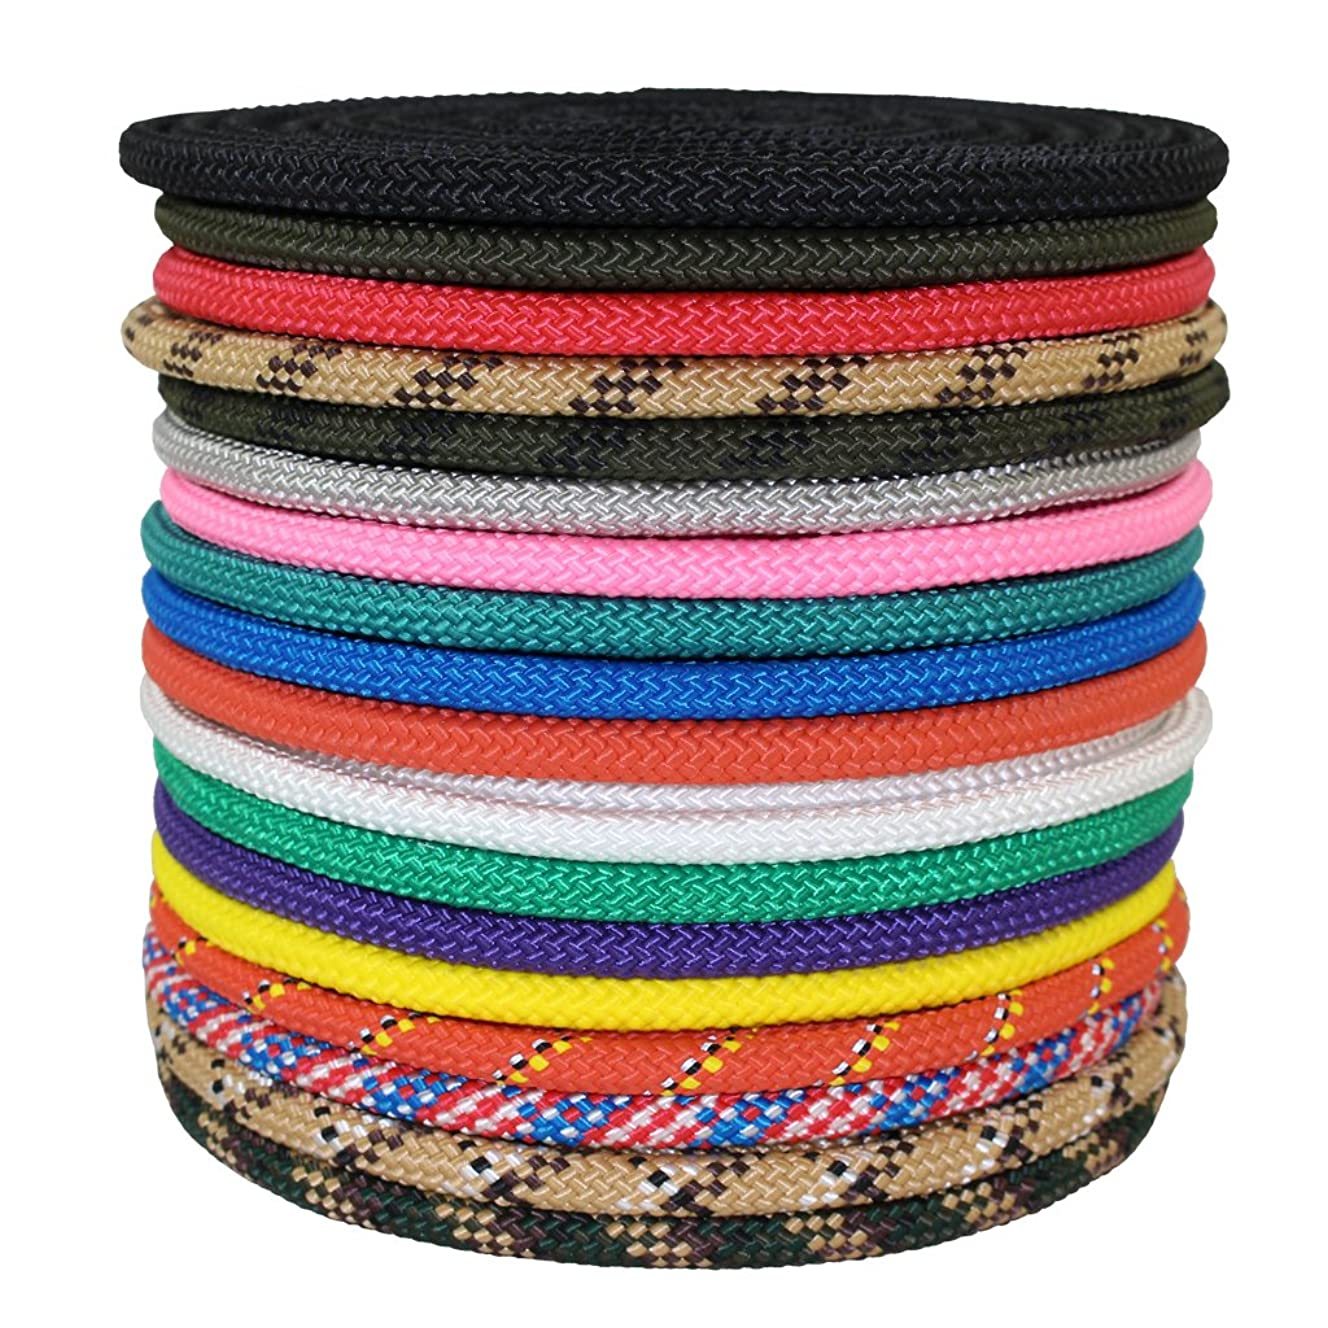 SGT KNOTS Nylon Rope Utility Rope (5/8 inch) Polypropylene Sheath - Moisture Resistant - for Crafts, Cargo, Tie-Downs, Marine, Camping, Swings (50 ft - Stars N Stripes)